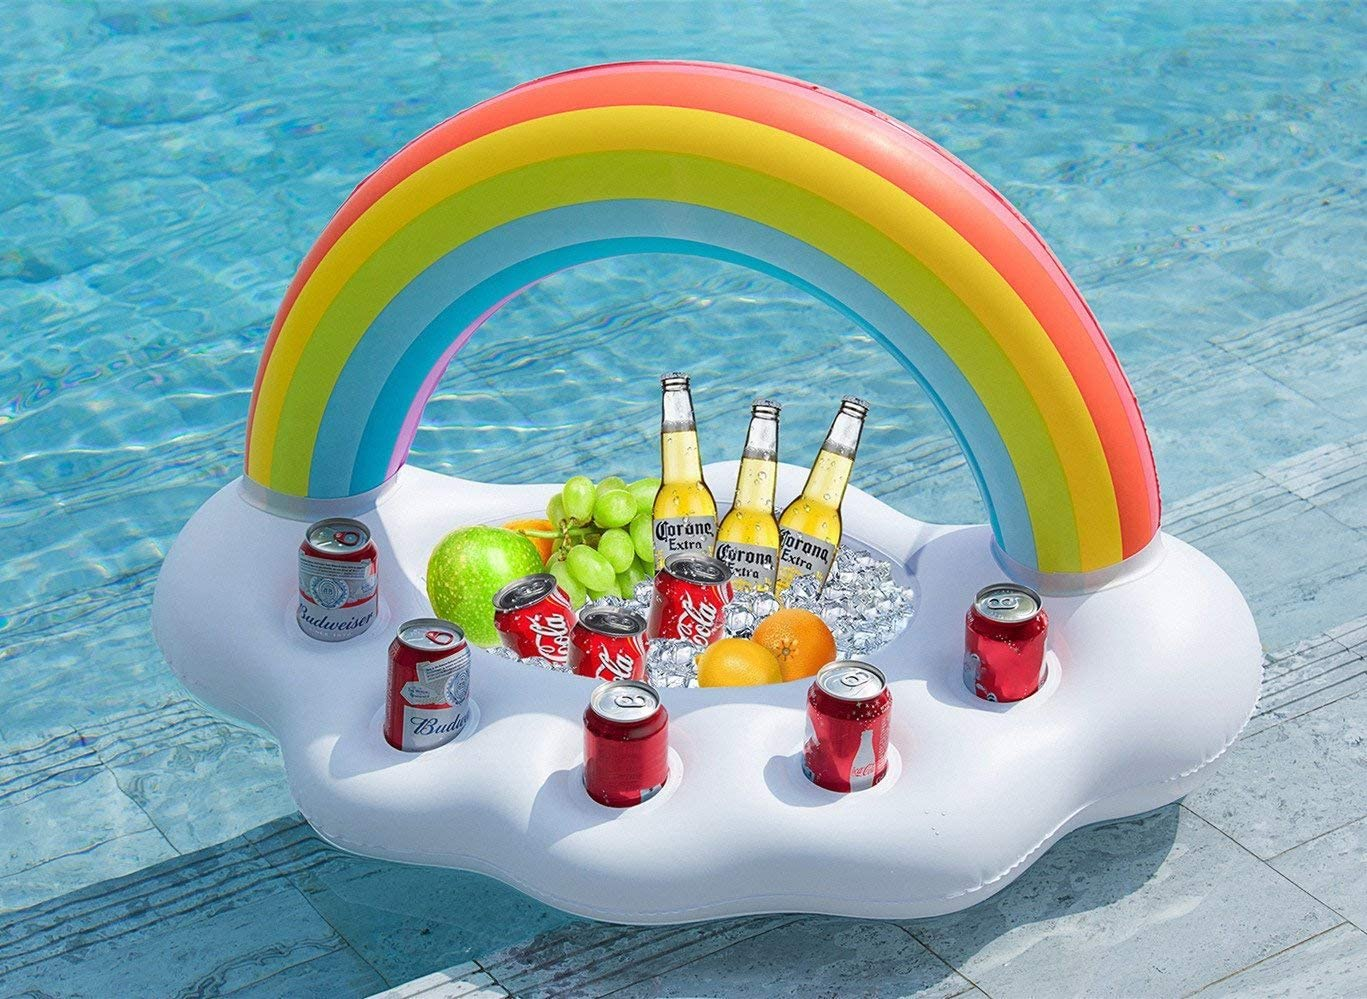 EDOBLUE Inflatable Rainbow Cloud Drink Holder Floating Beverage Salad Fruit Serving Bar Pool Float Party Accessories Summer Beach Leisure Cup Bottle Holder Water Fun Decorations Toys Kids Adults